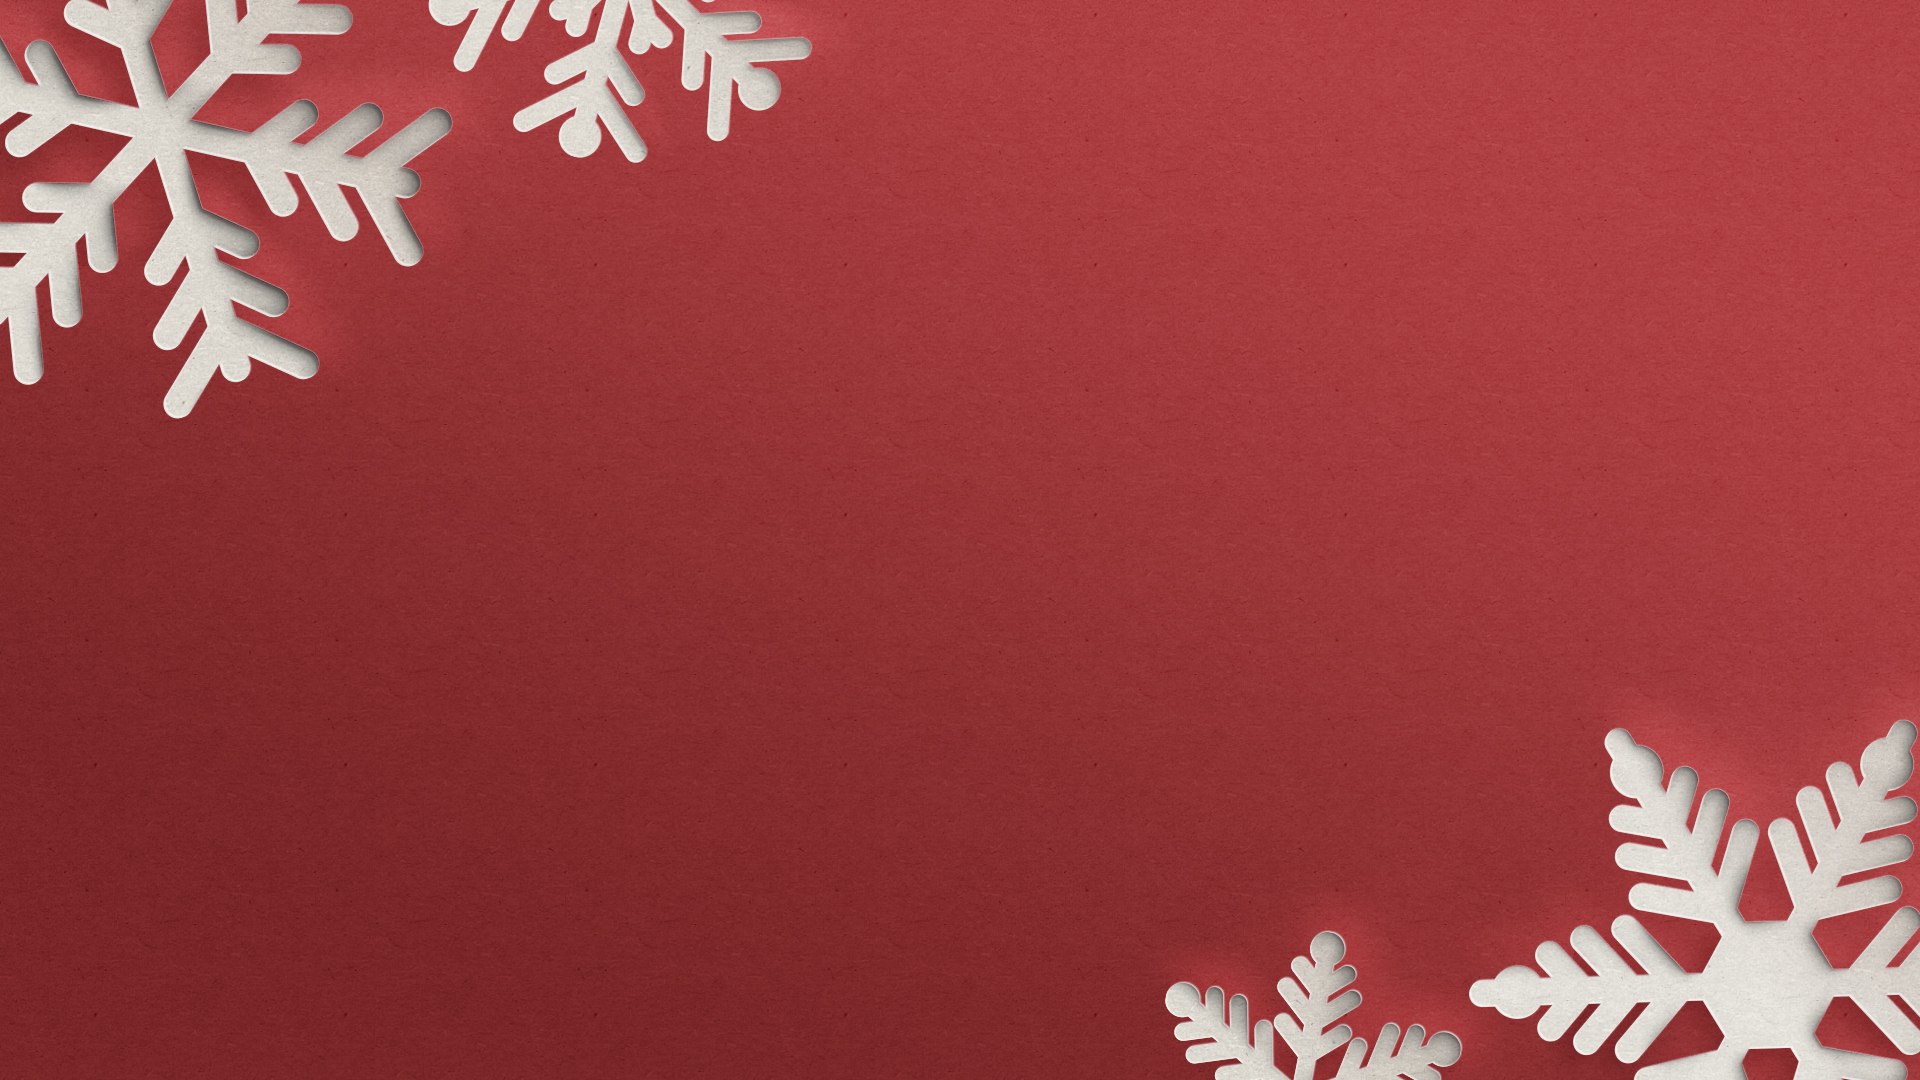 Free christmas resources free church resources from lifeurch 5 must have resources for christmas kristyandbryce Images